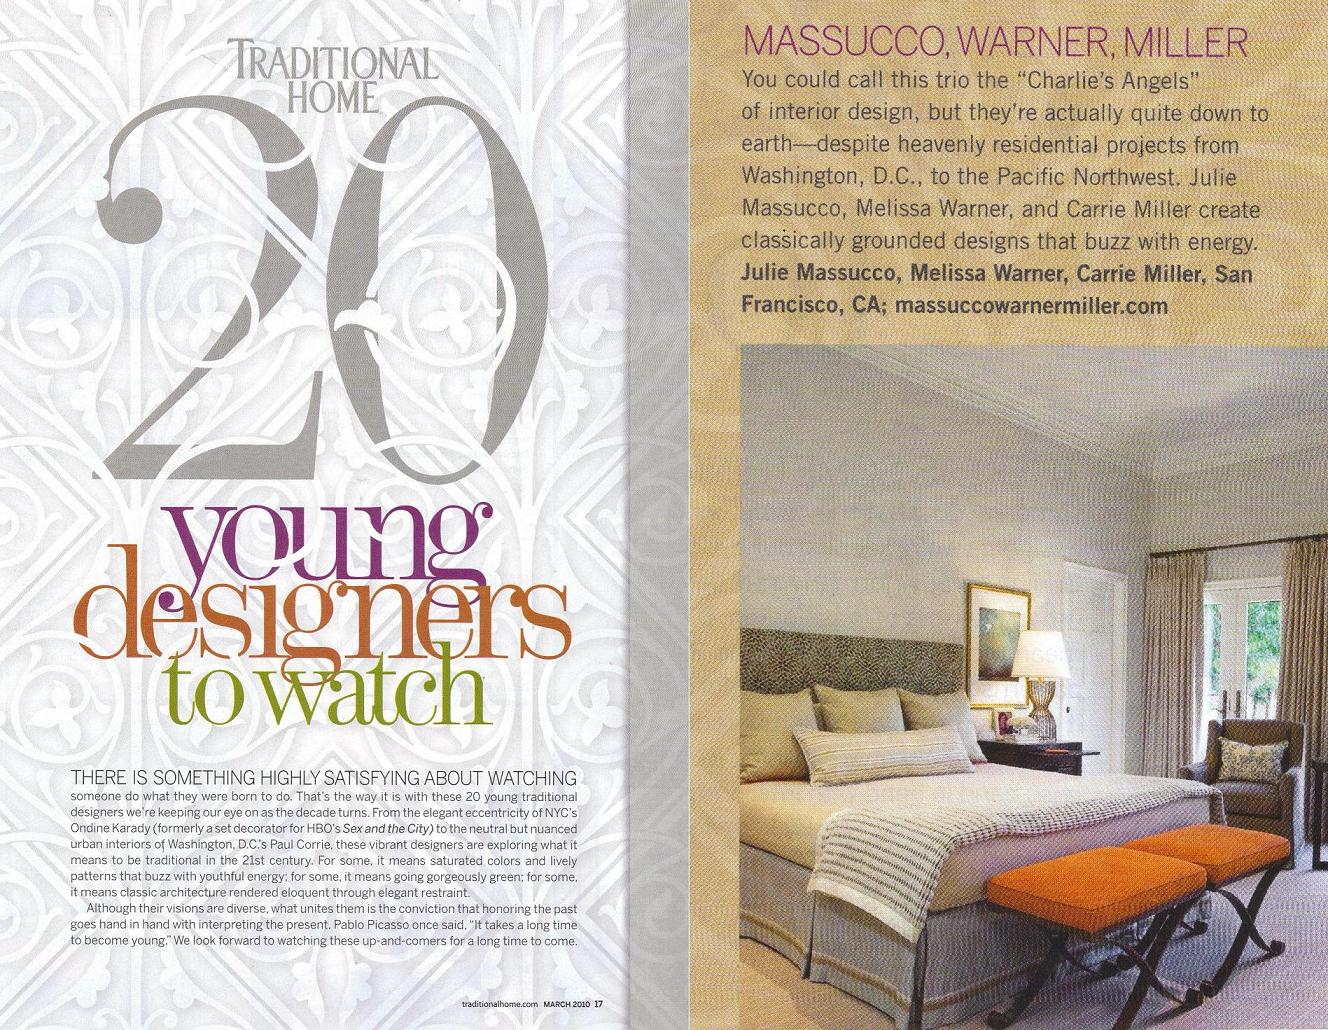 Traditional Home 20 to watch full Cover.jpg